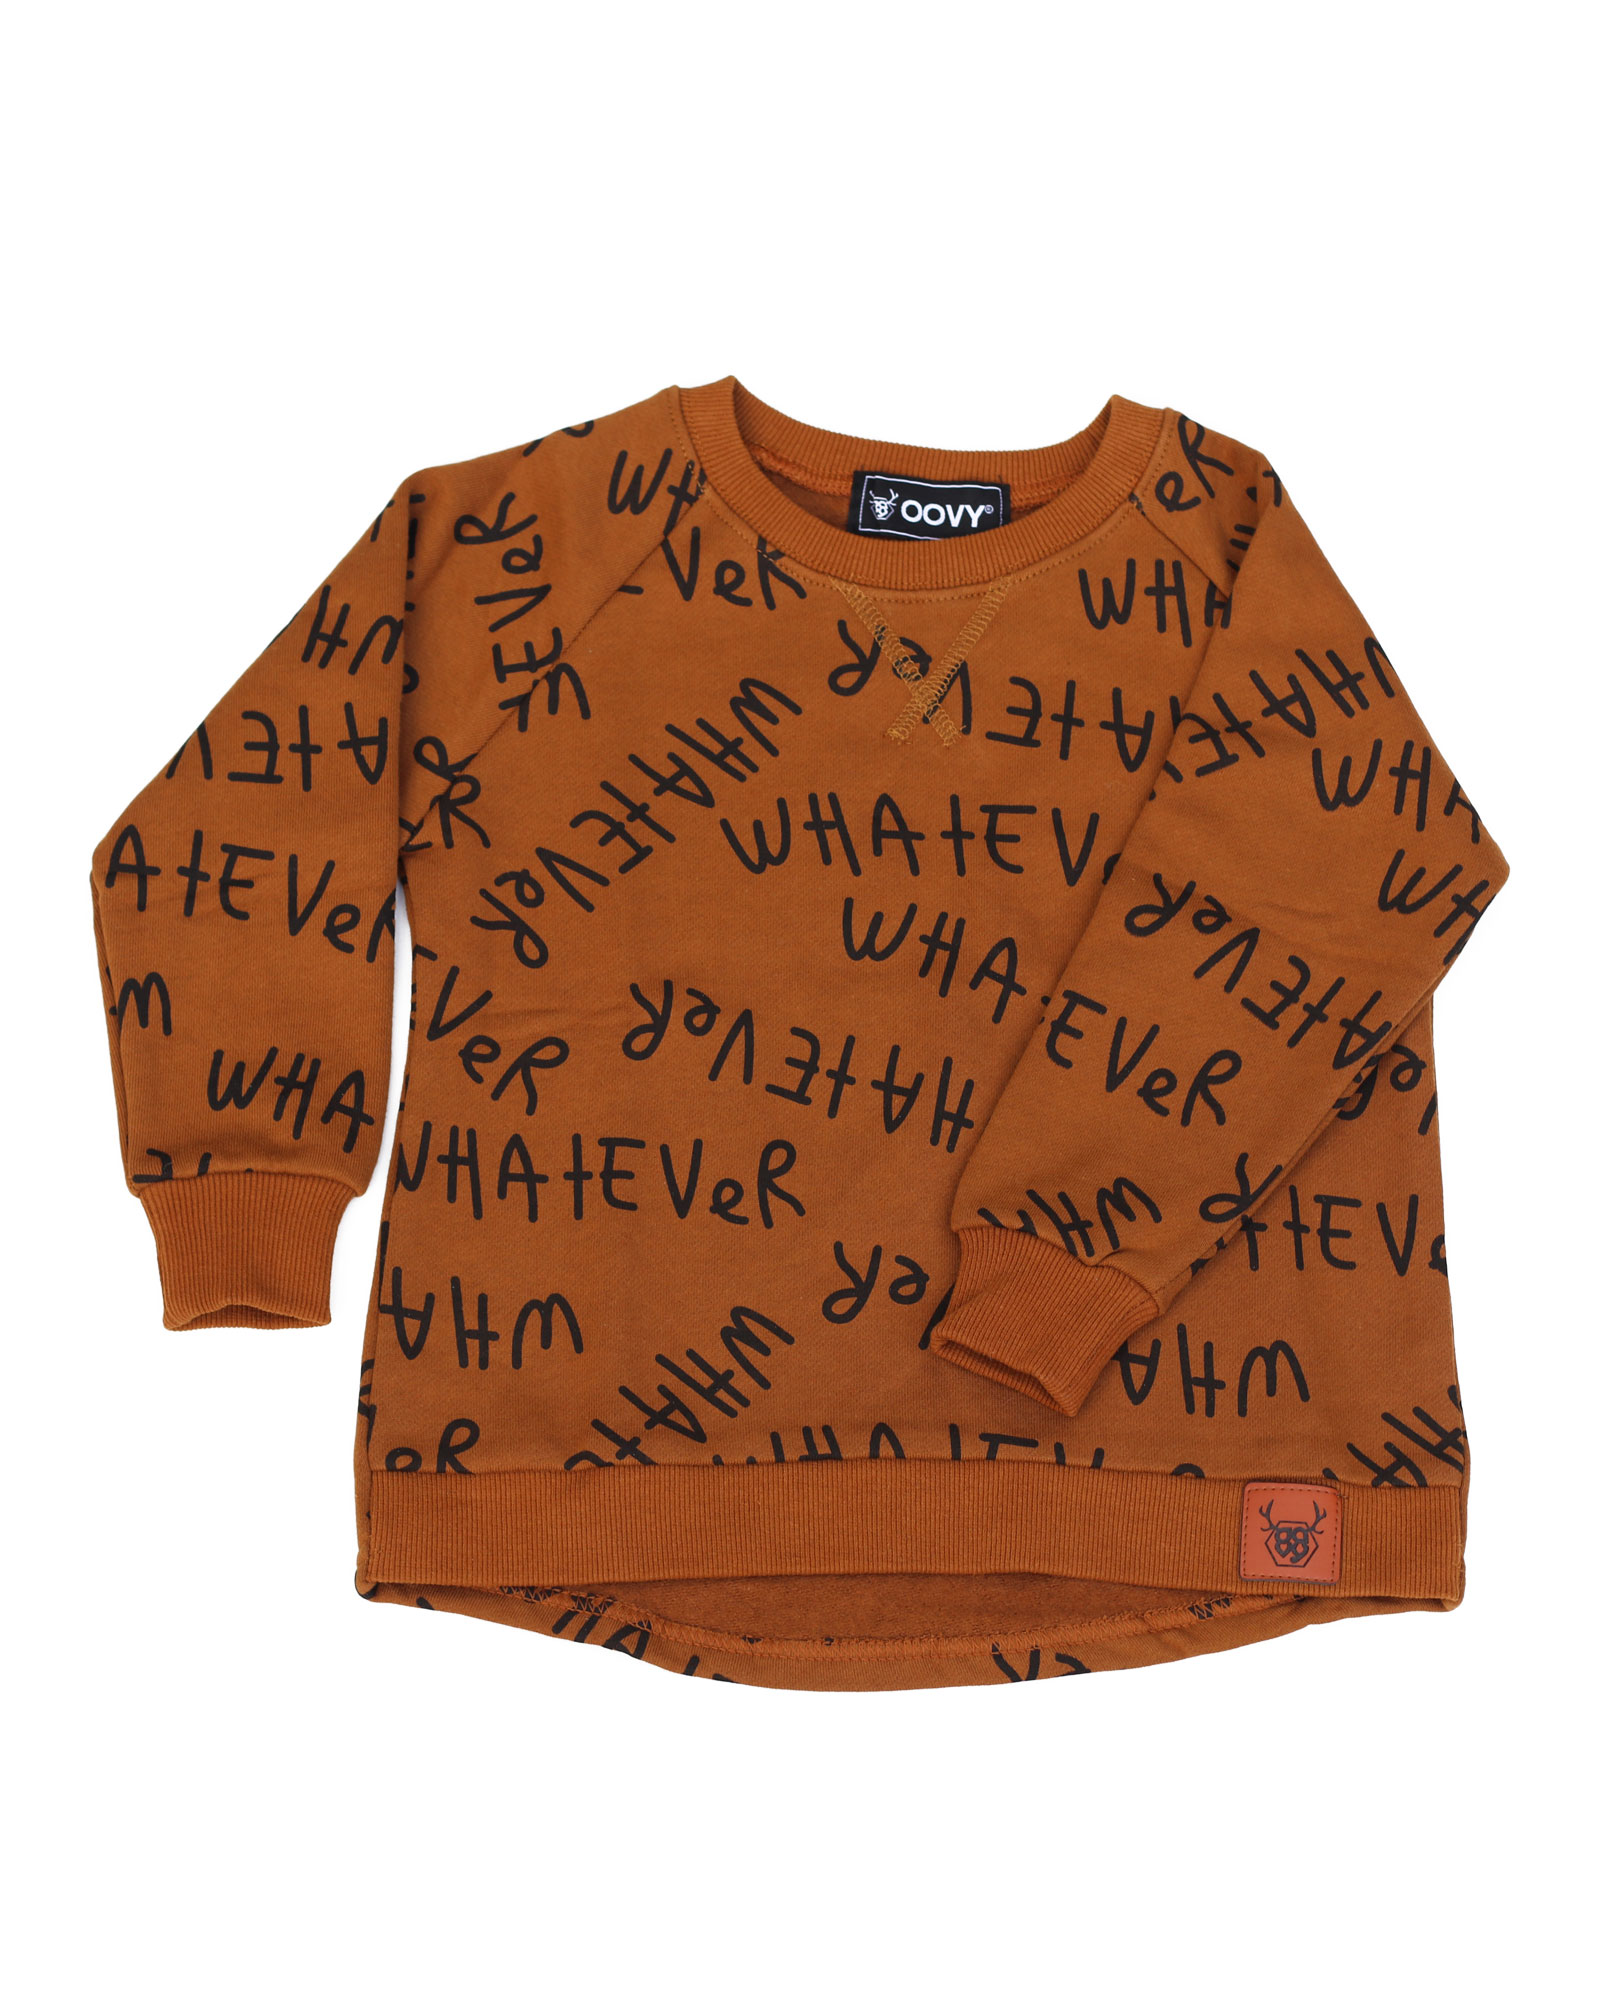 OOVY Whatever Sweater